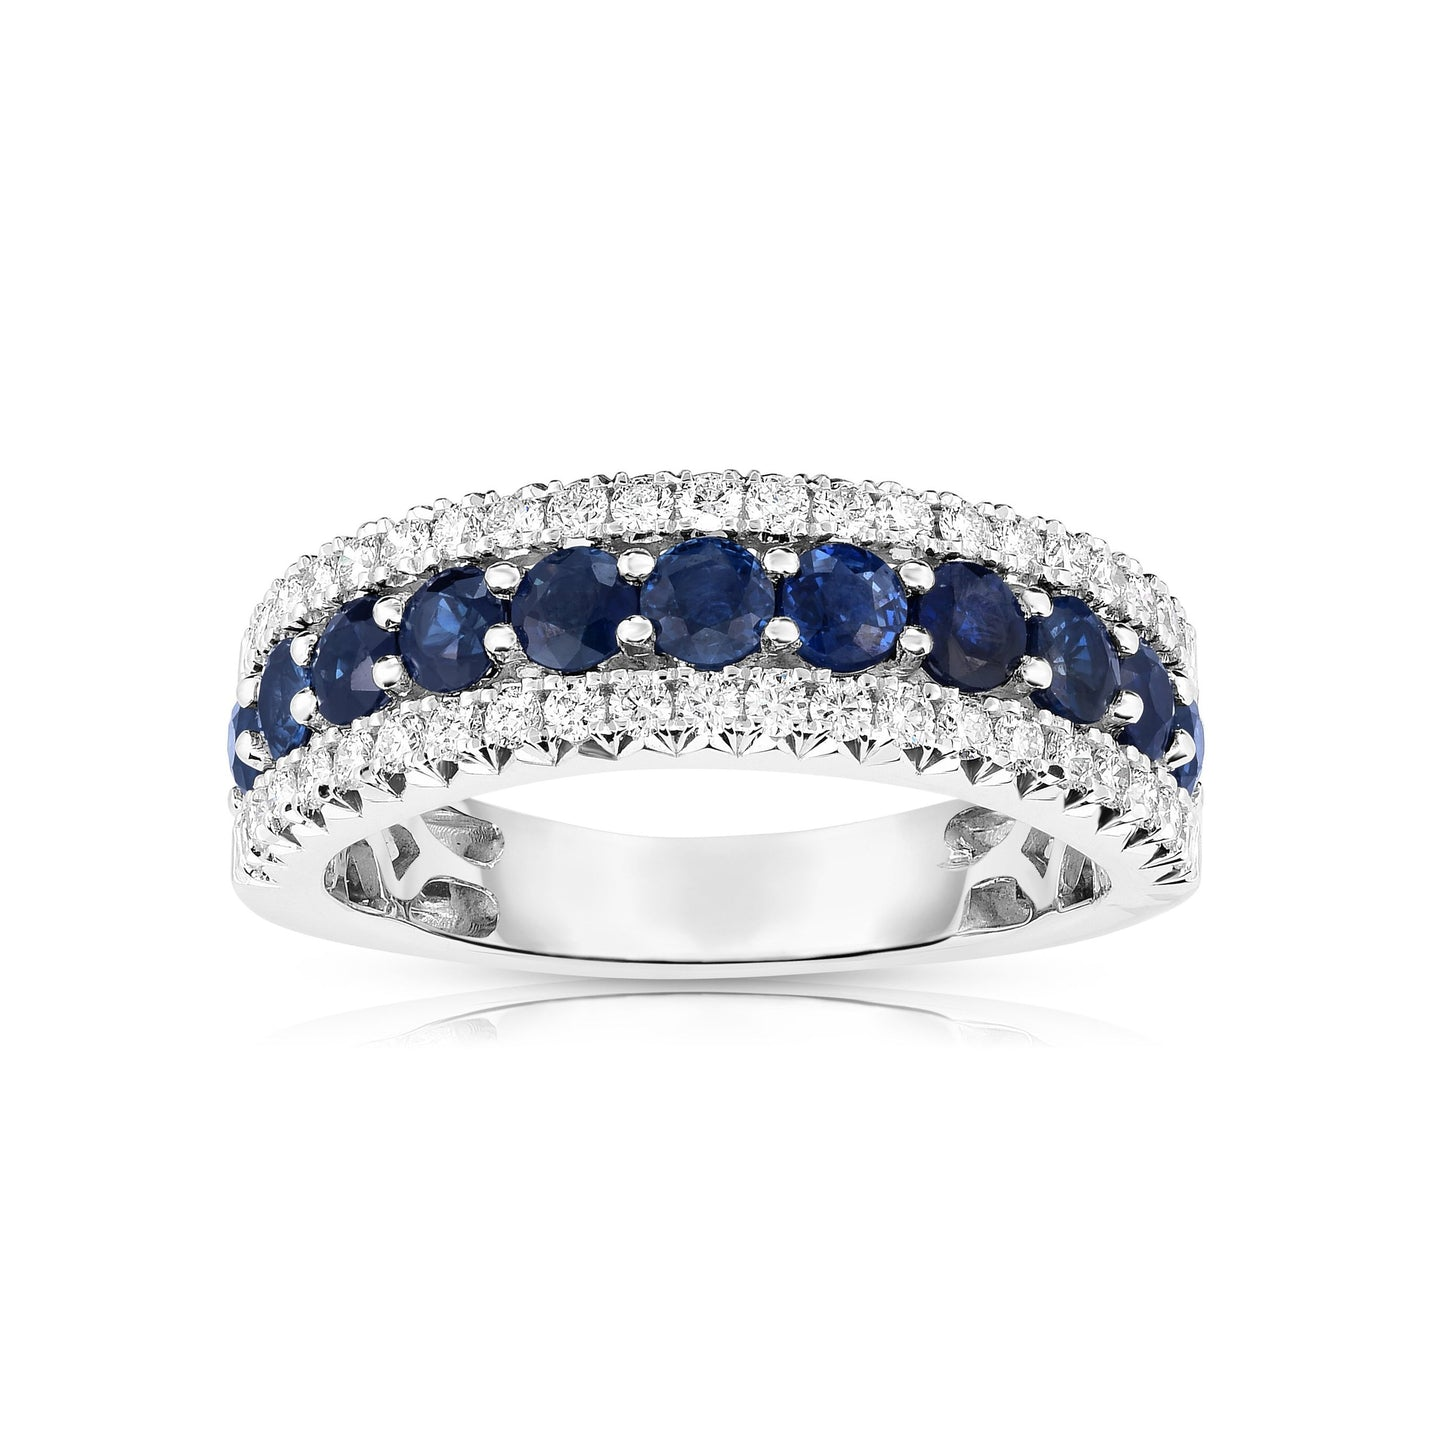 Sabel Collection 14K White Gold Sapphire and Diamond Three Row Ring